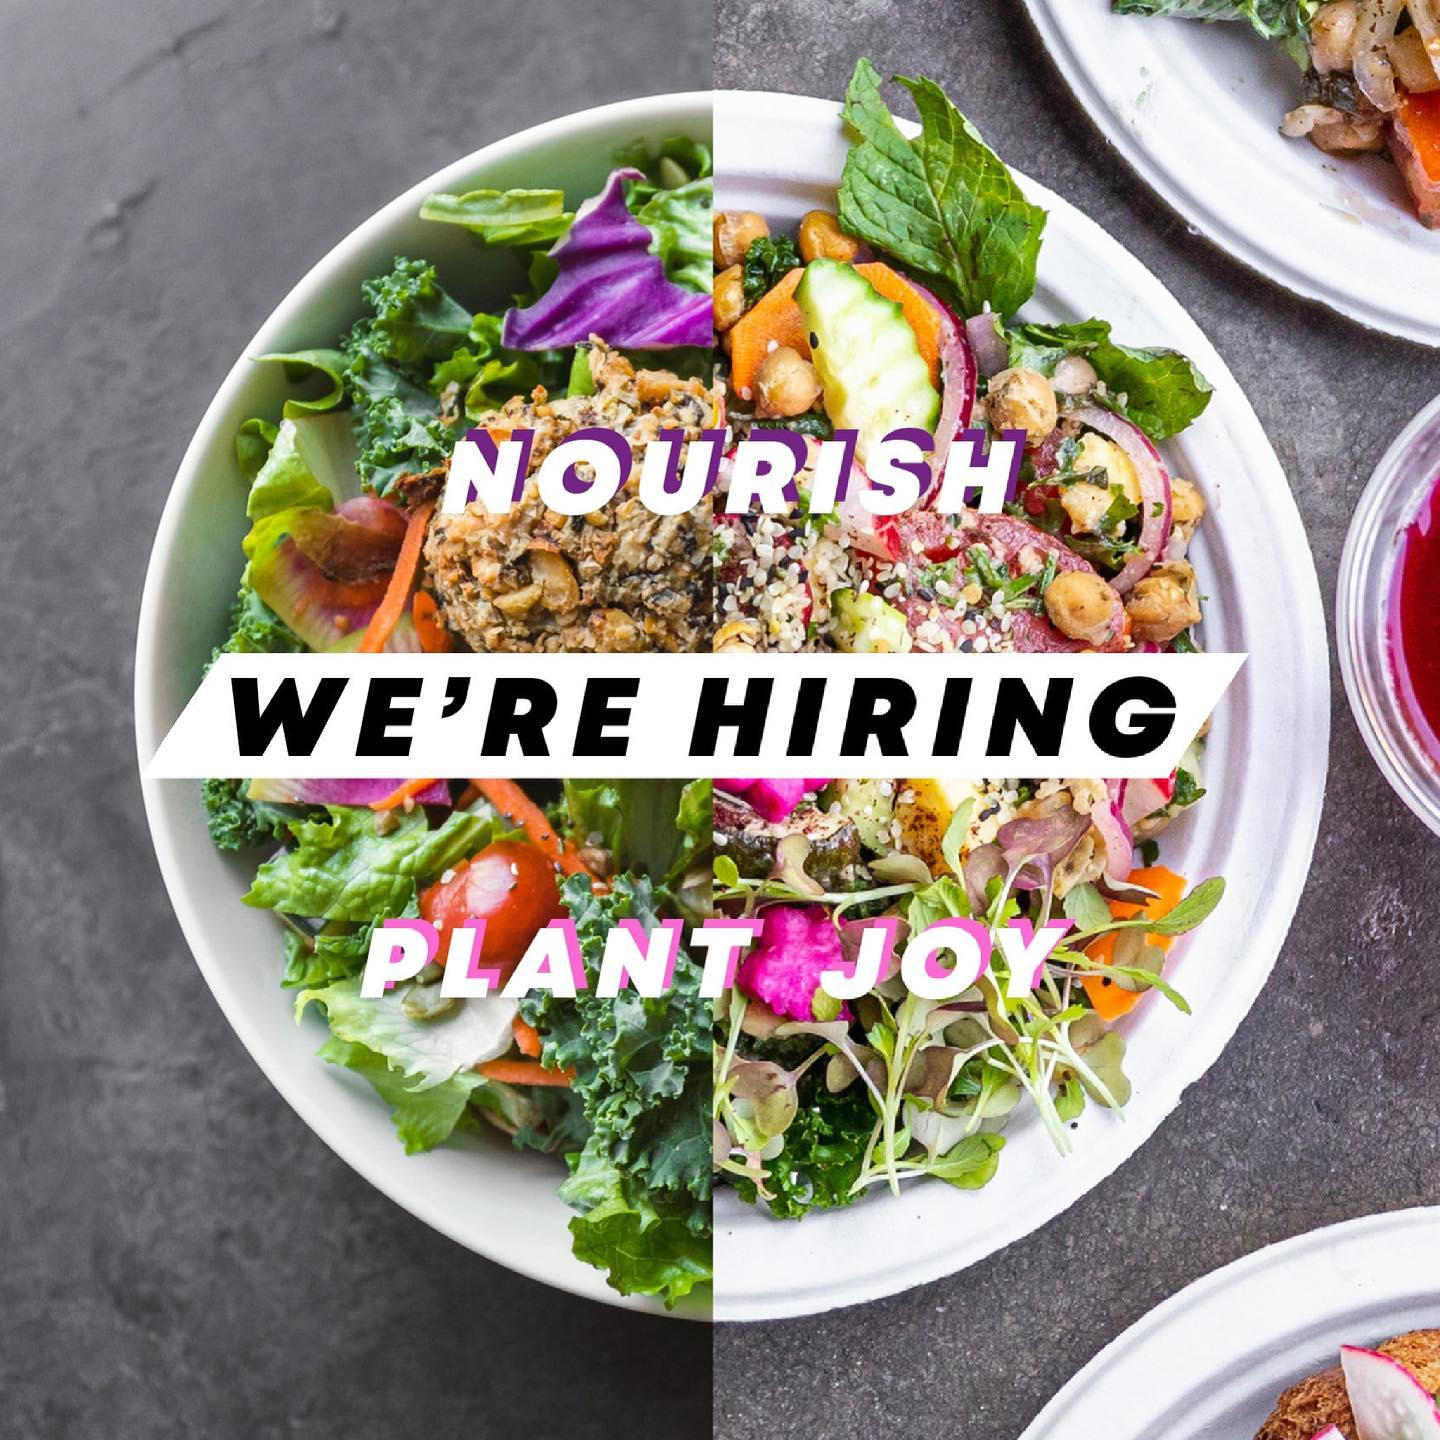 Calling Fellow Vegan Culinarians - We're Hiring!